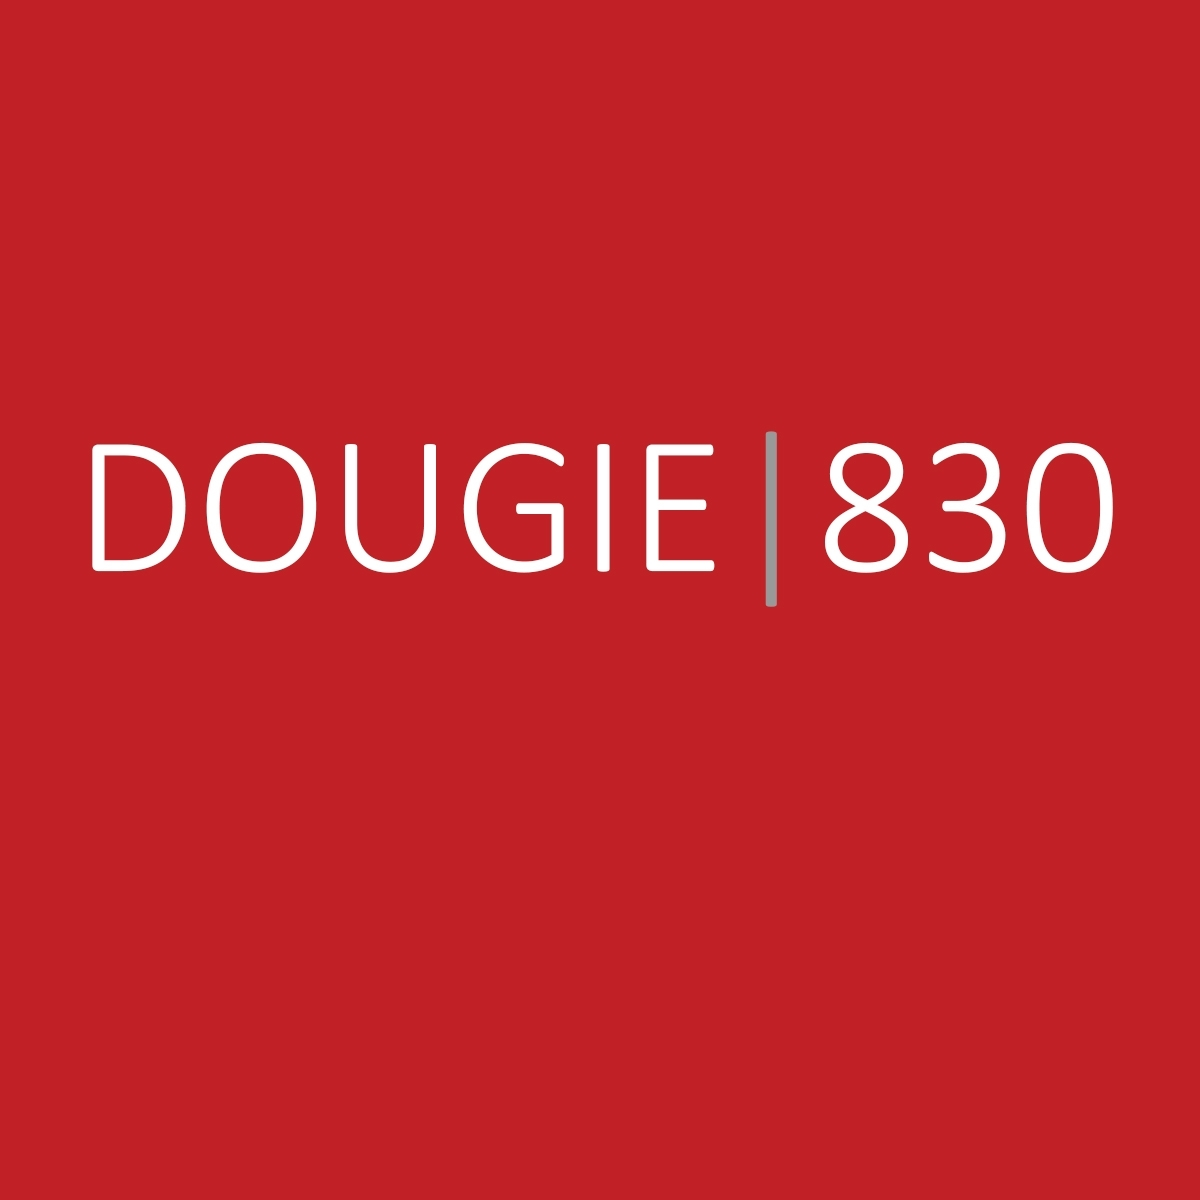 dougie nightingale chairs. Black Bedroom Furniture Sets. Home Design Ideas